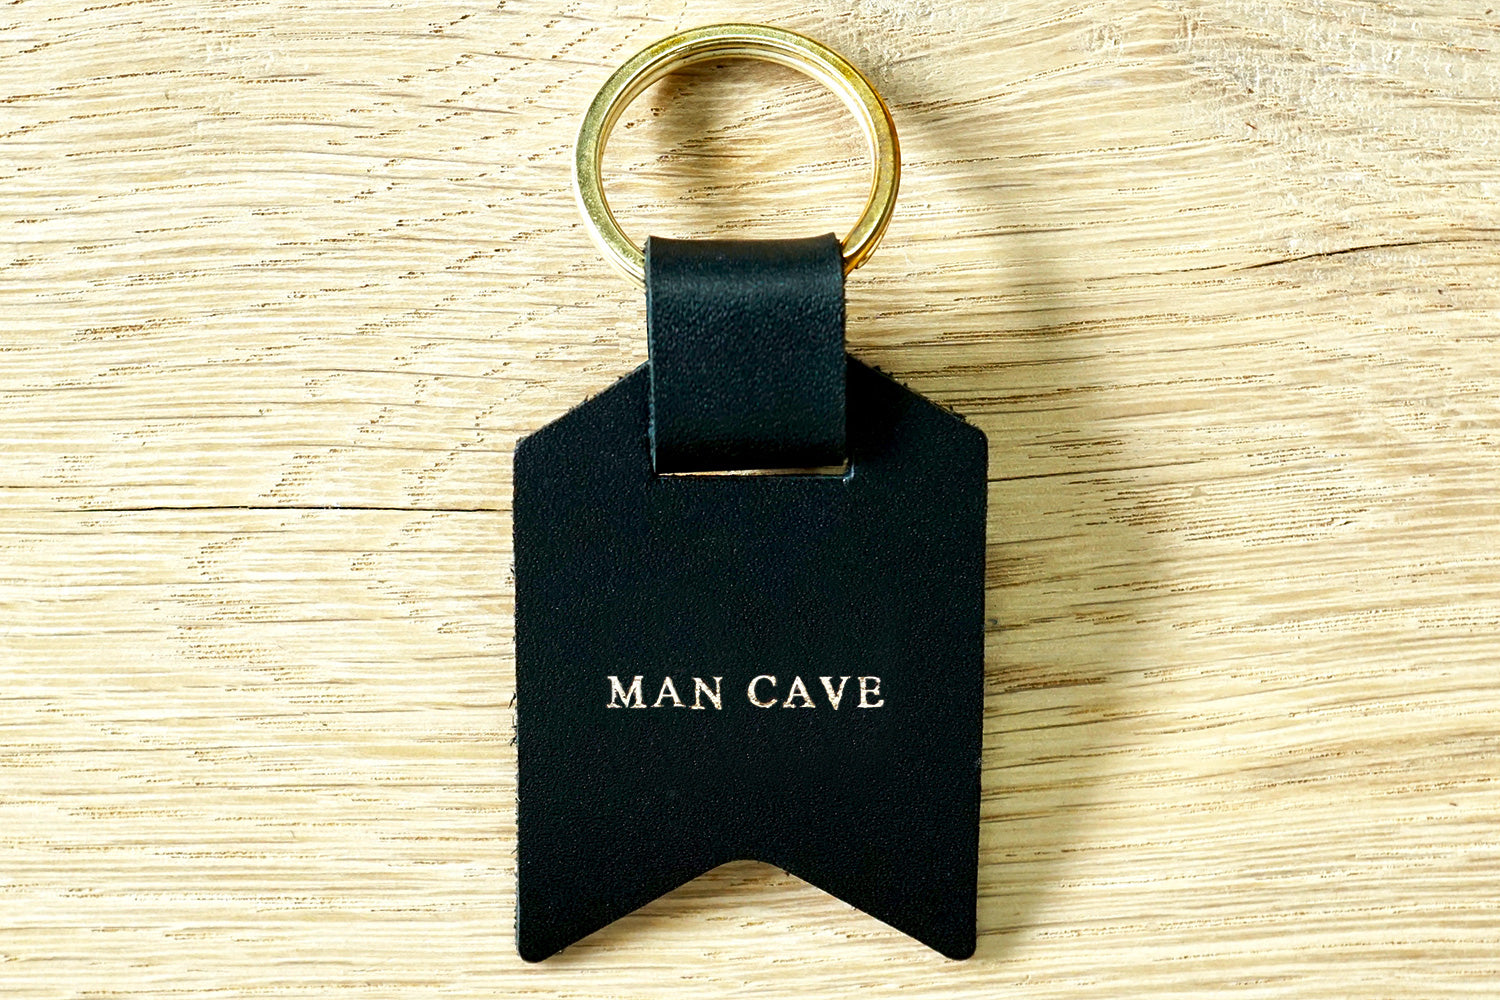 Peronalised keyrings from Bookshell Bindery in black leather with 'Man cave'